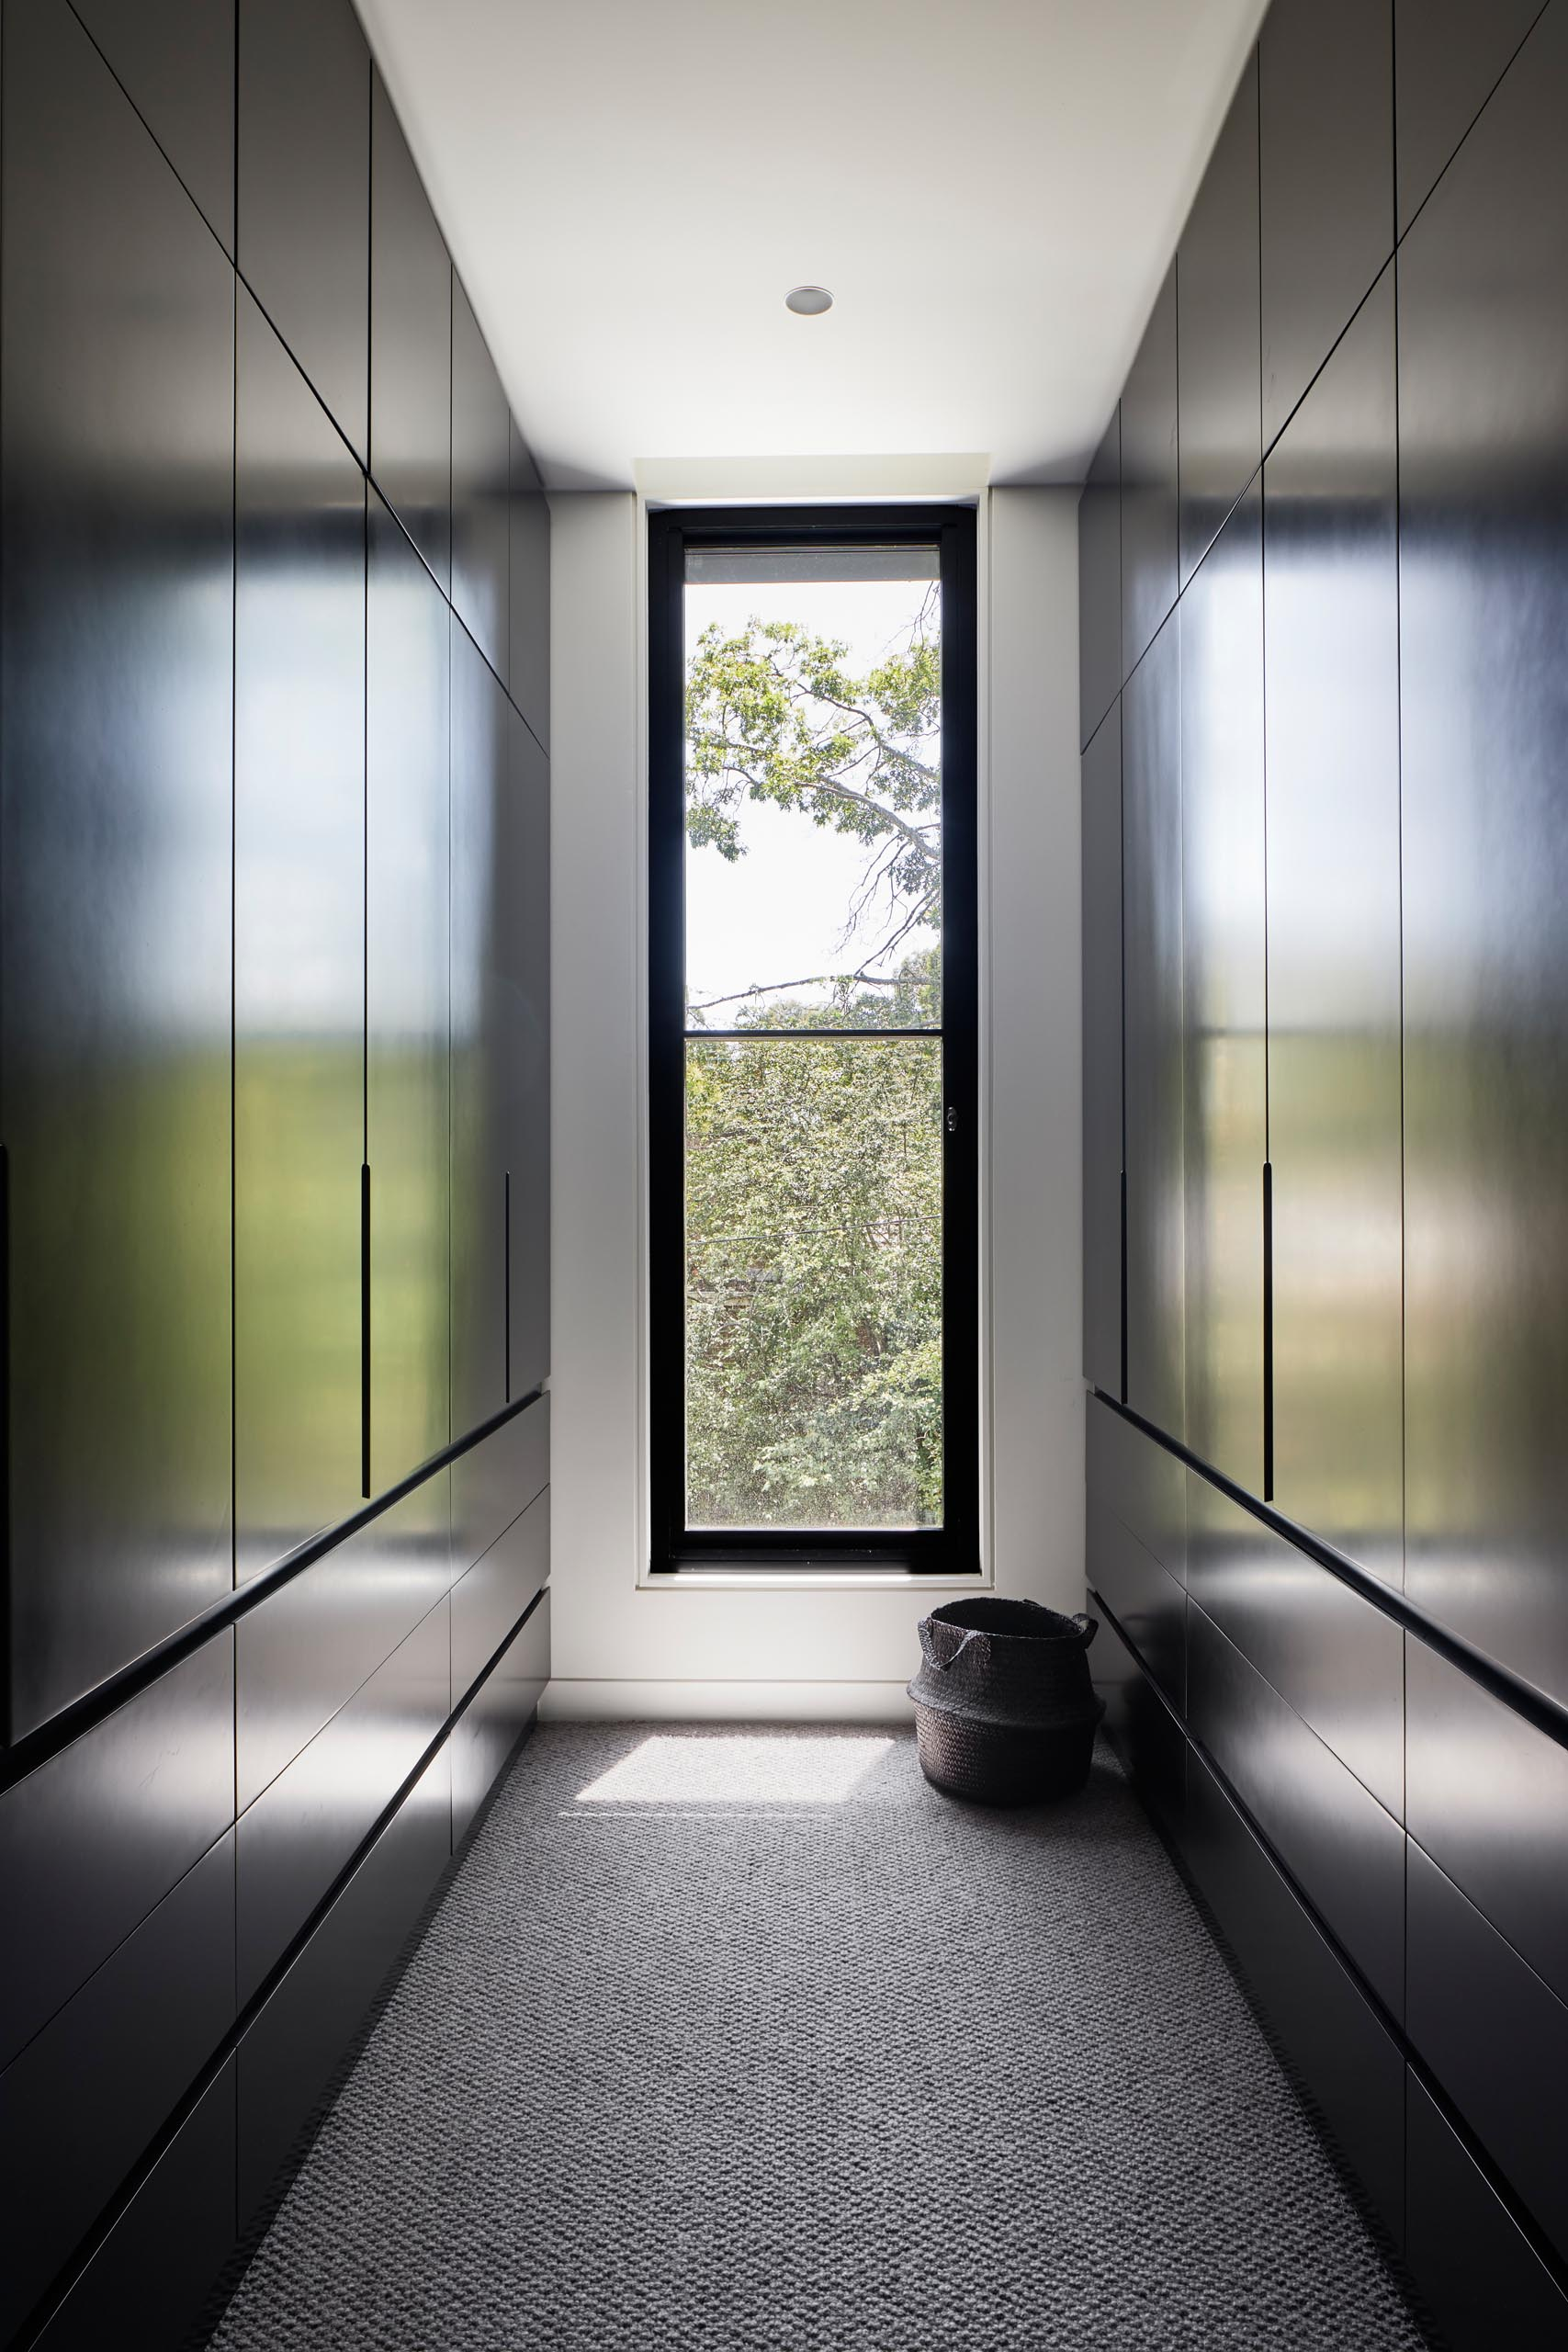 In this modern walk-in closet, there's dark floor-to-ceiling cabinetry that lines the walls, and allows the eye to focus on the tree view through the window.